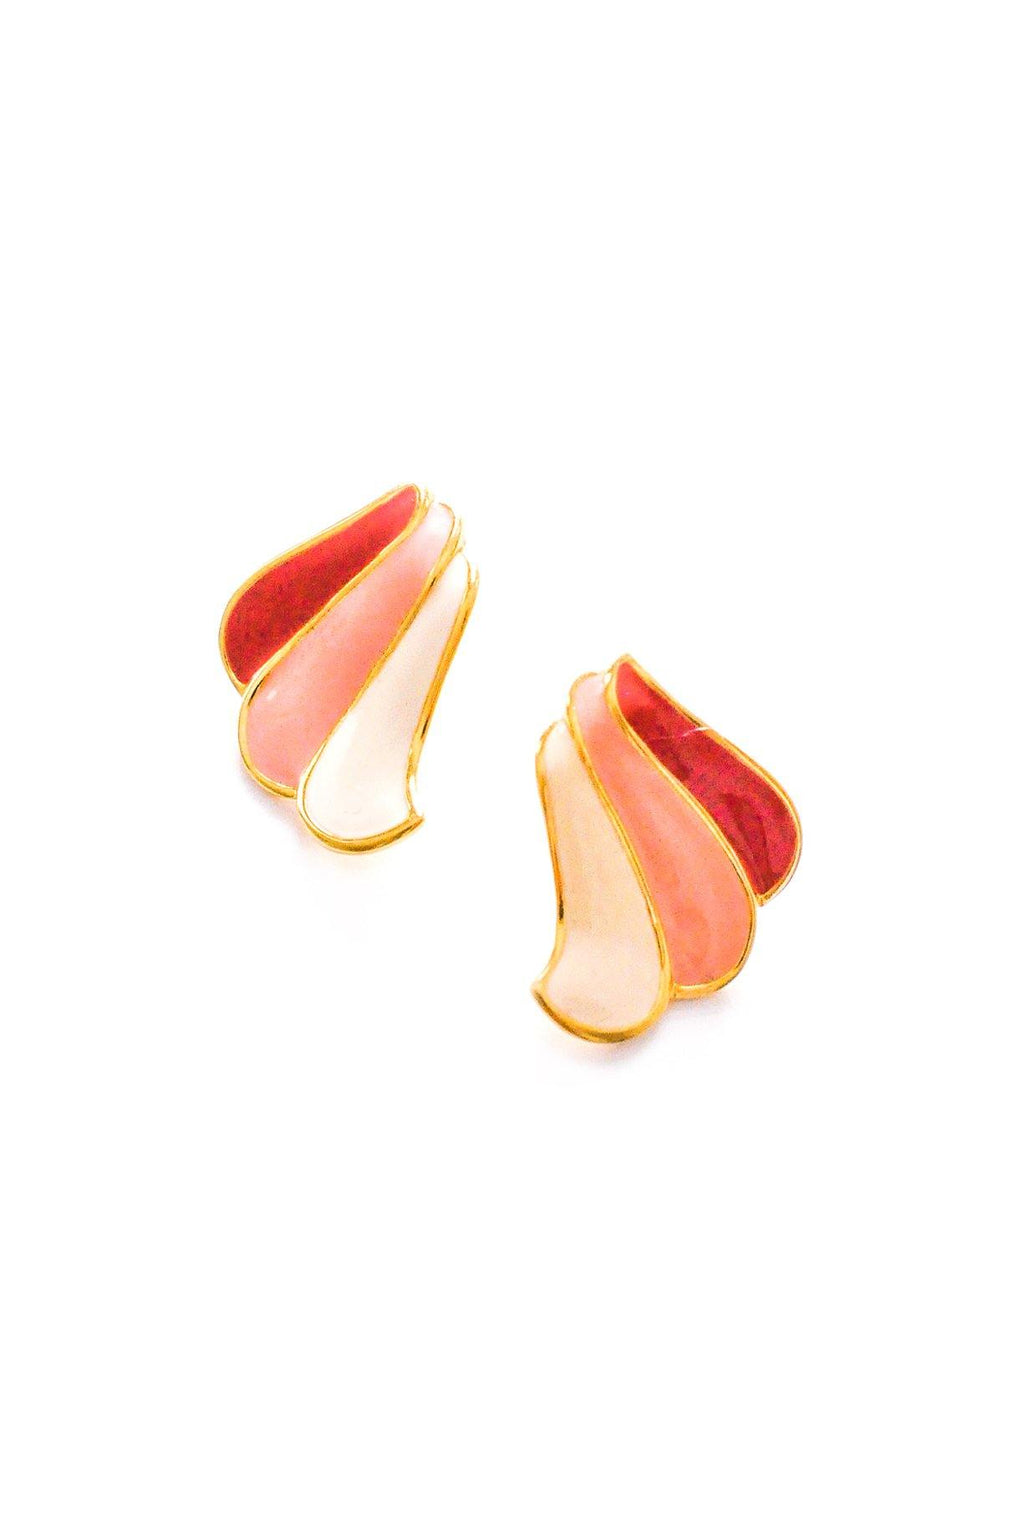 Sherbert Pierced Earrings